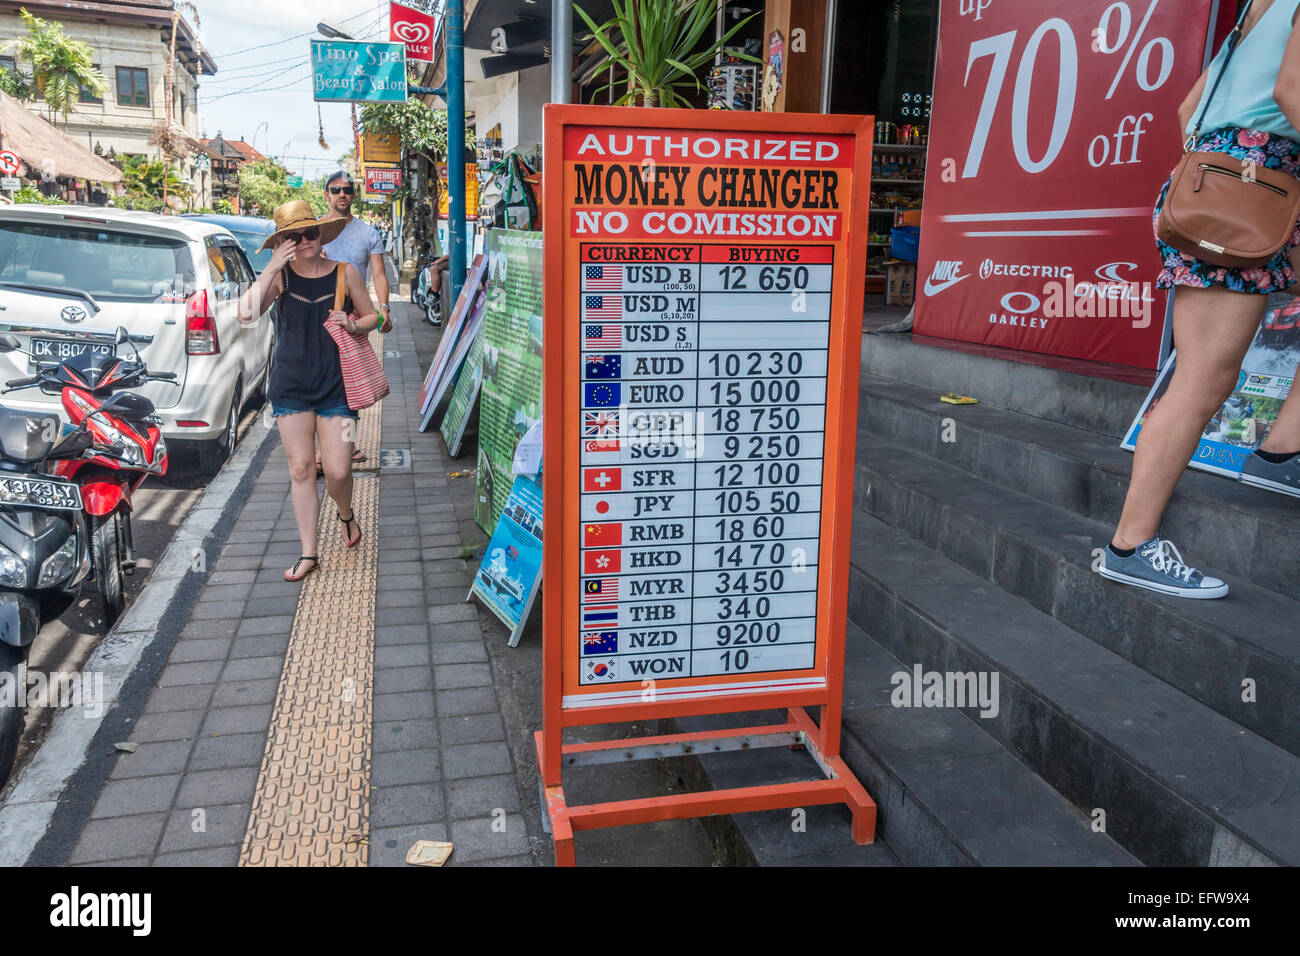 Bali Currency Stock Photos & Bali Currency Stock Images - Alamy